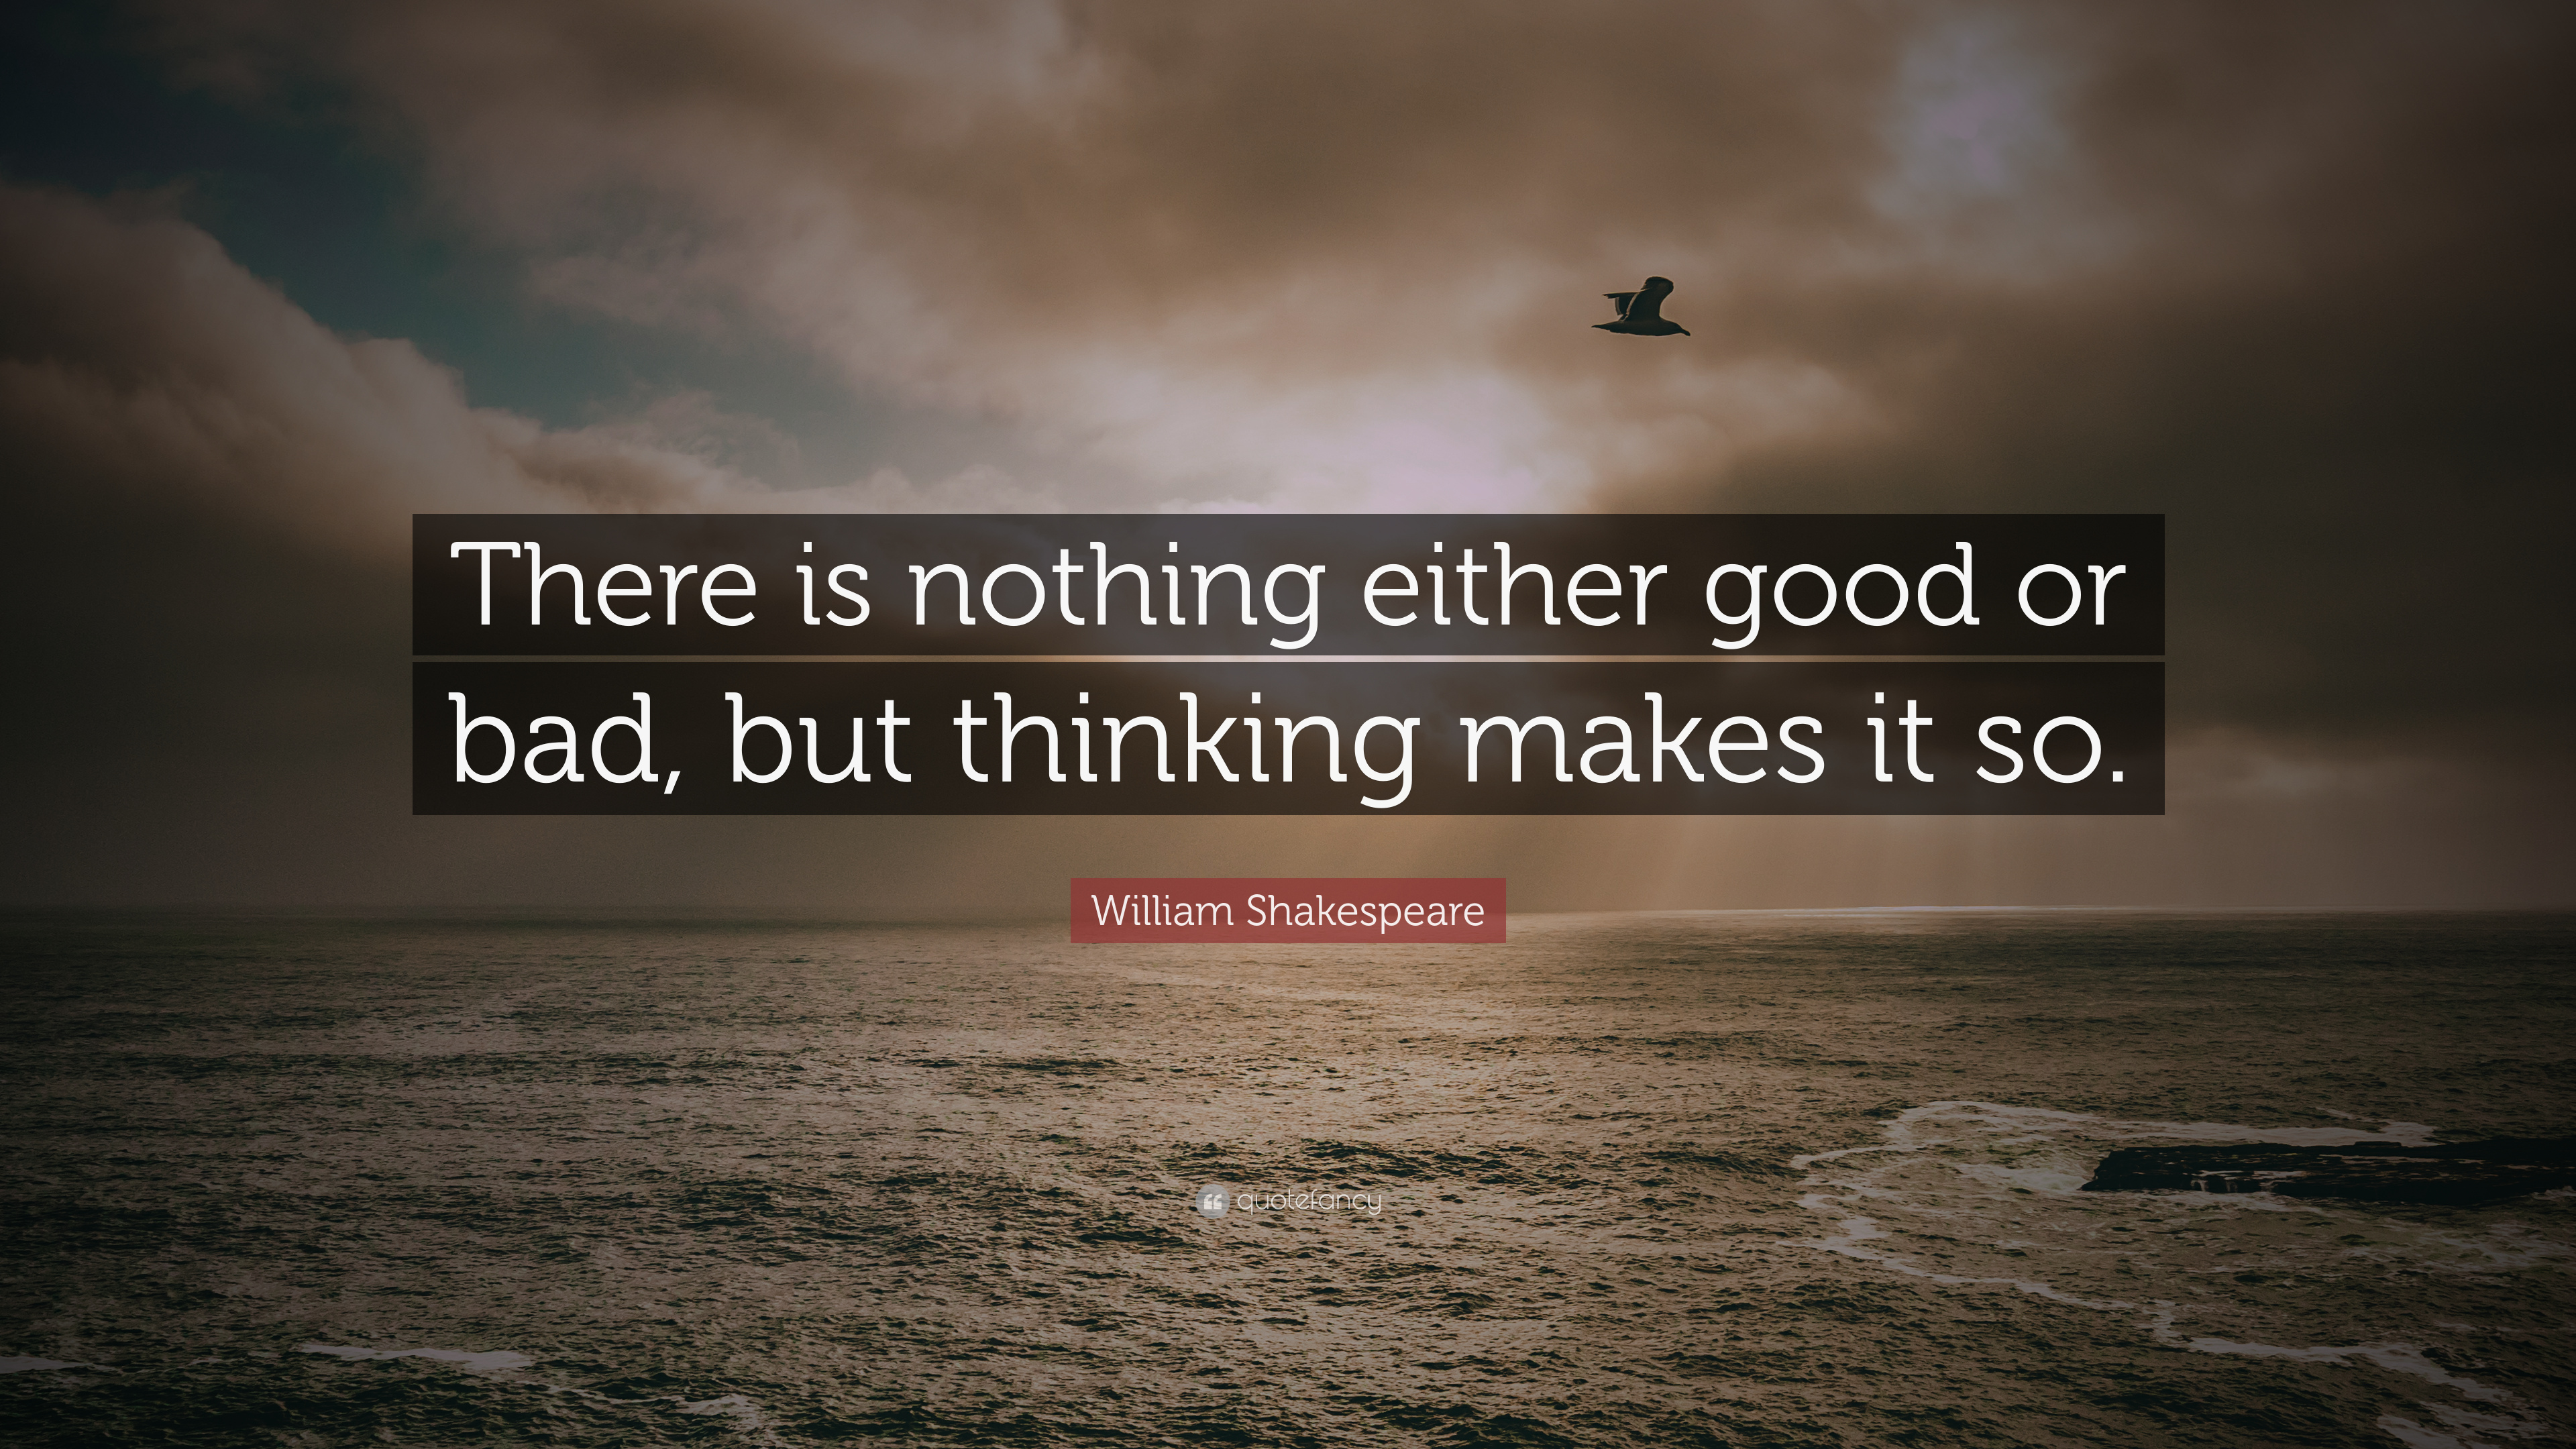 """nothing is good or bad thinking makes it so """"taking the good and the bad together may detoxify the bad experiences, allowing you to make meaning out of them in a way that supports psychological well-being,"""" the researchers found."""